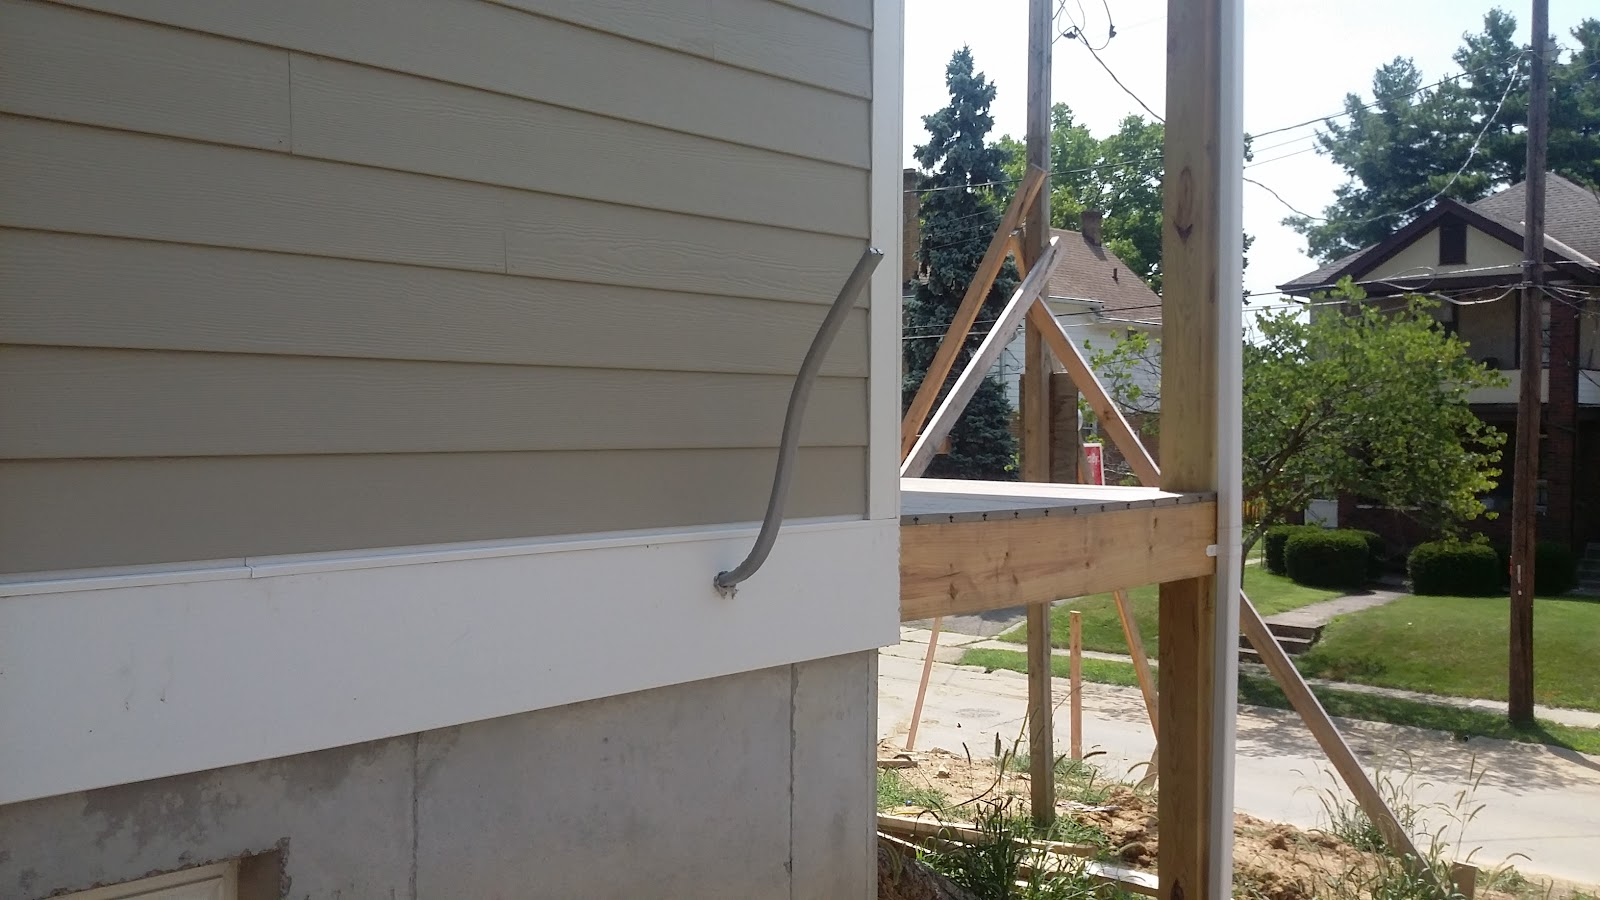 small resolution of  panel box in the front corner of the basement and providing conduits for the home run wiring and outlets mounted along the concrete foundation walls